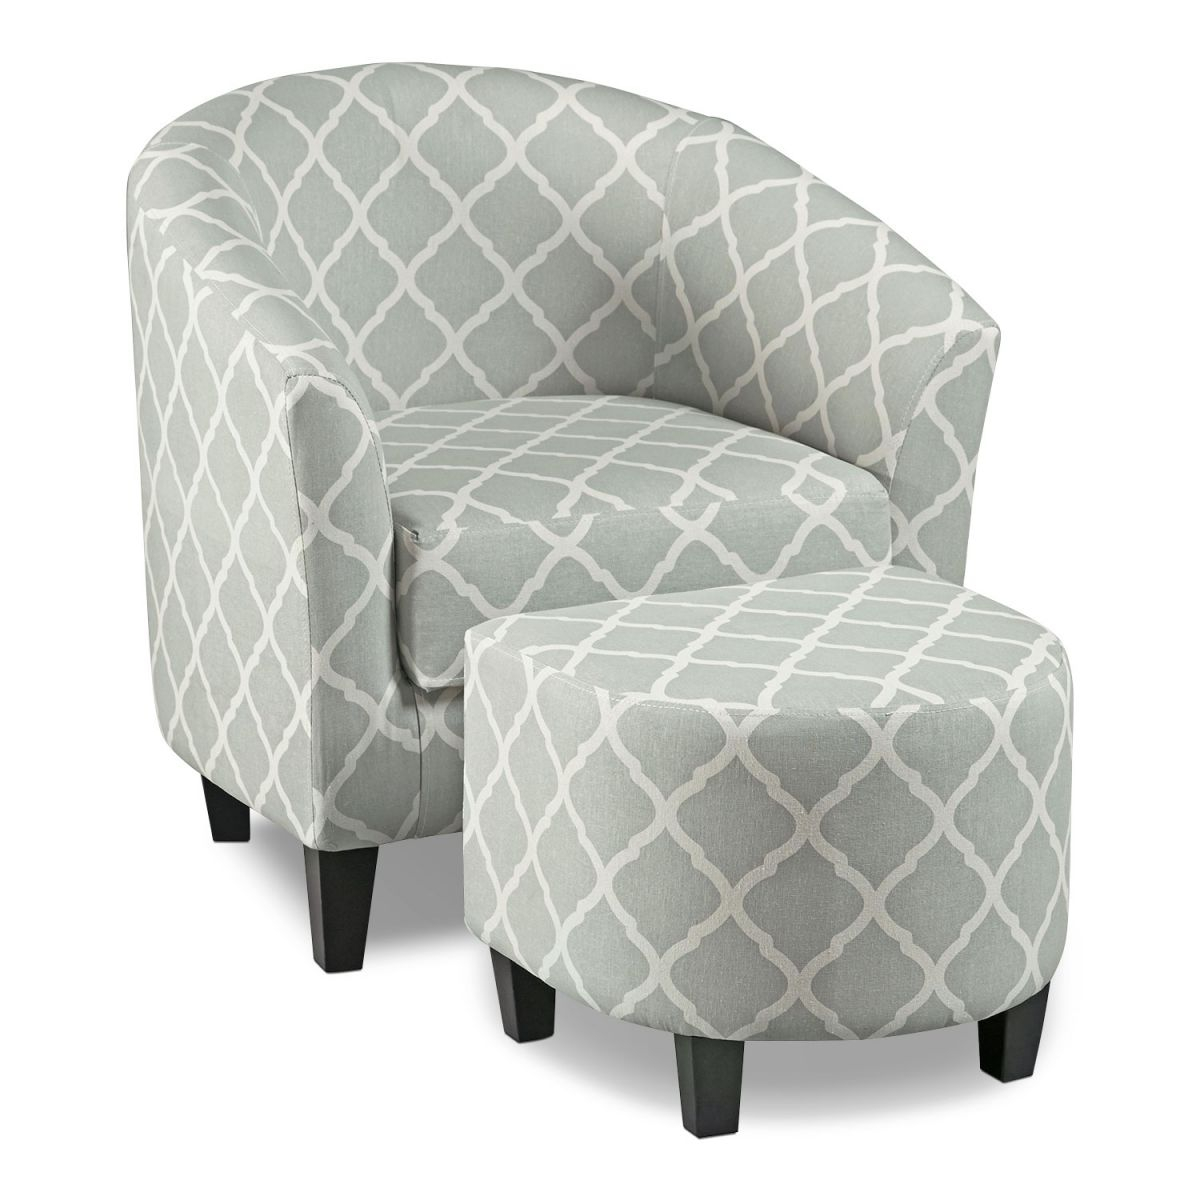 Sperrie Accent Chair And Ottoman – Gray inside Best of Living Room Furniture Accent Chairs